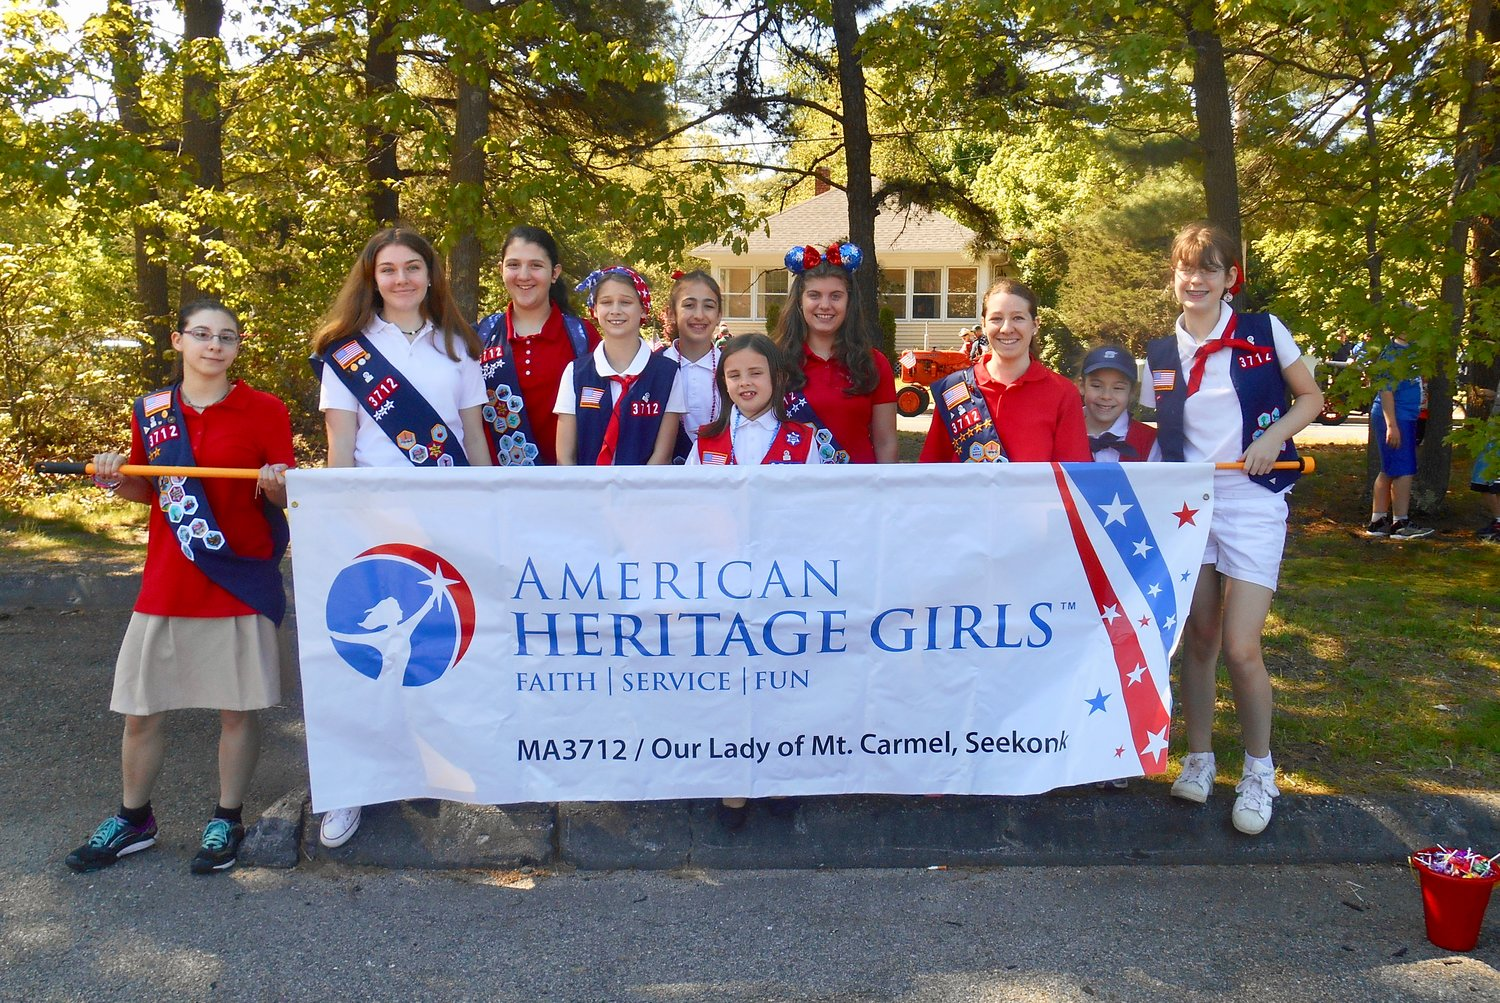 American Heritage Girls Troop MA3712 proud to participate in Parade